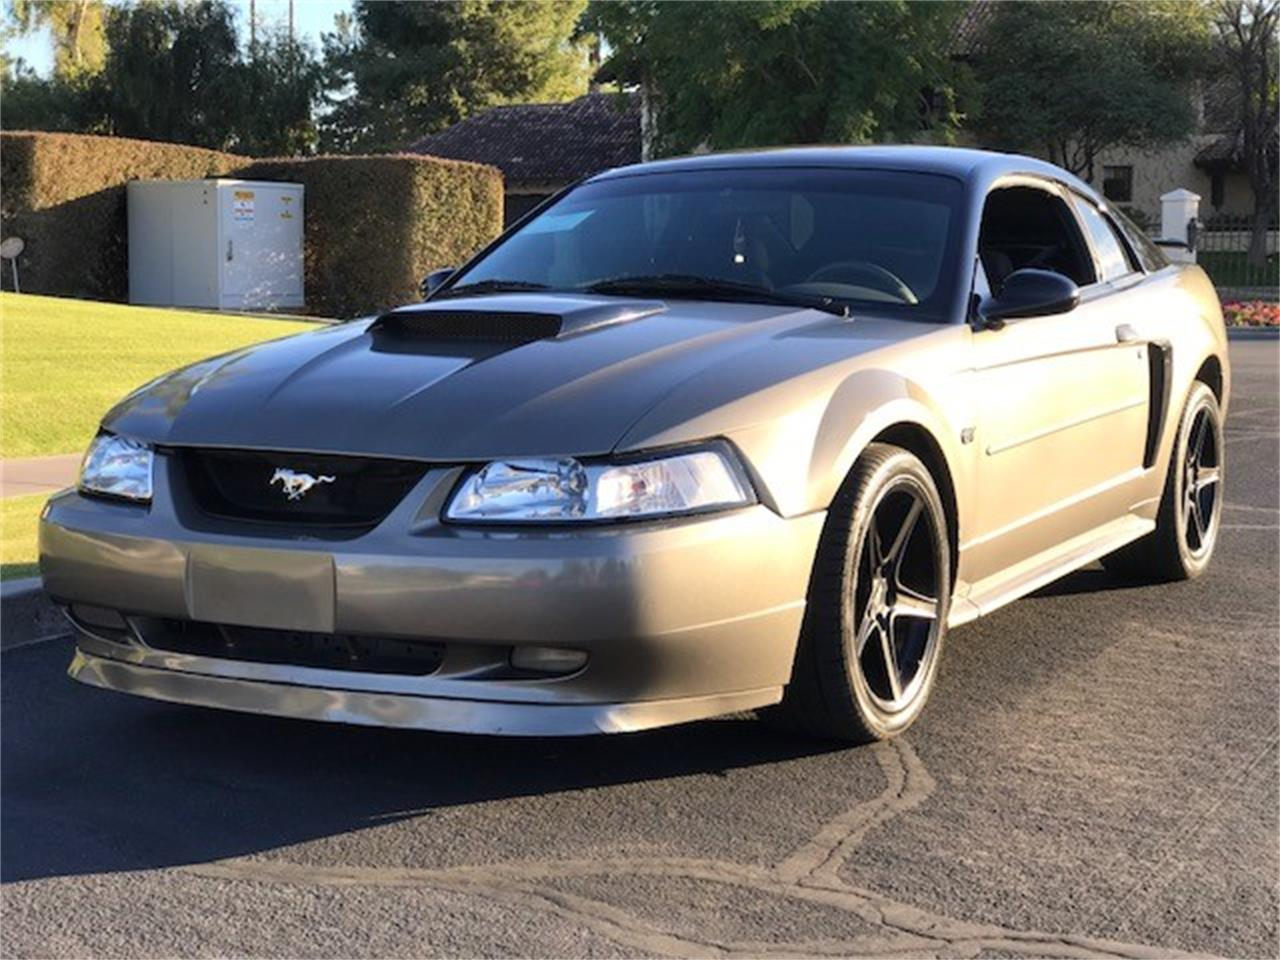 Large picture of 02 mustang gt moh7